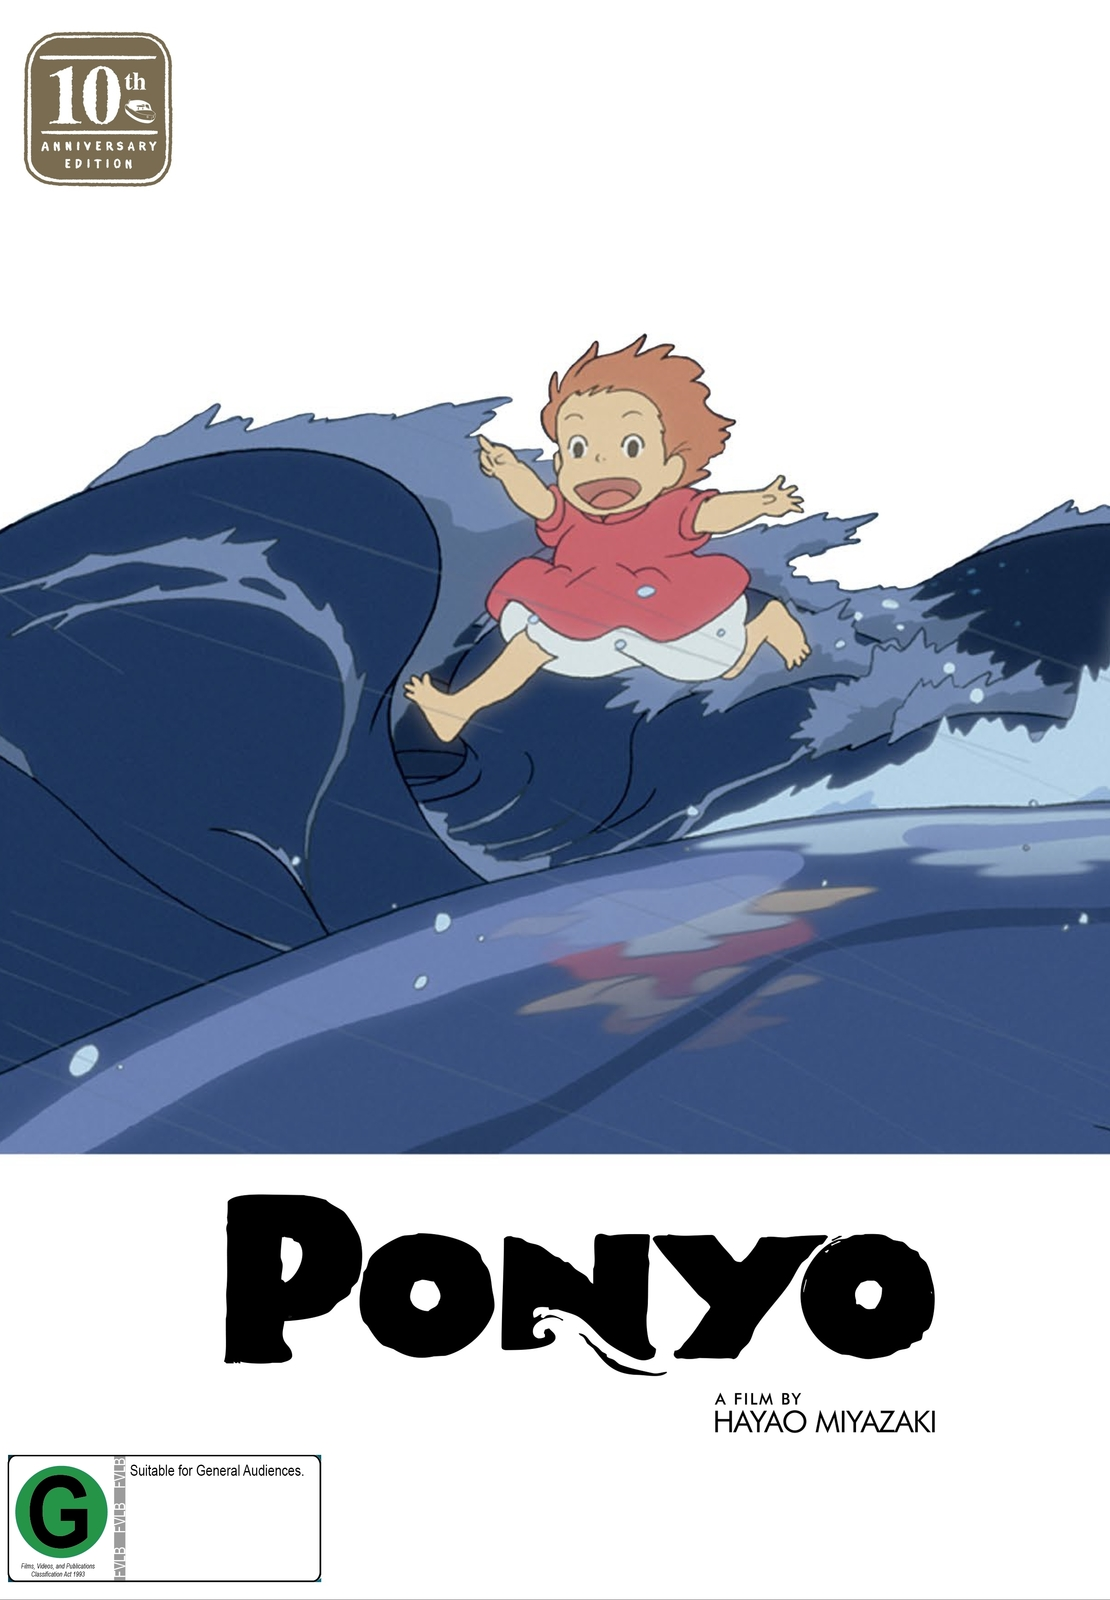 Ponyo - 10th Anniversary Limited Edition (Blu-ray & DVD Combo With Artbook) on DVD, Blu-ray image